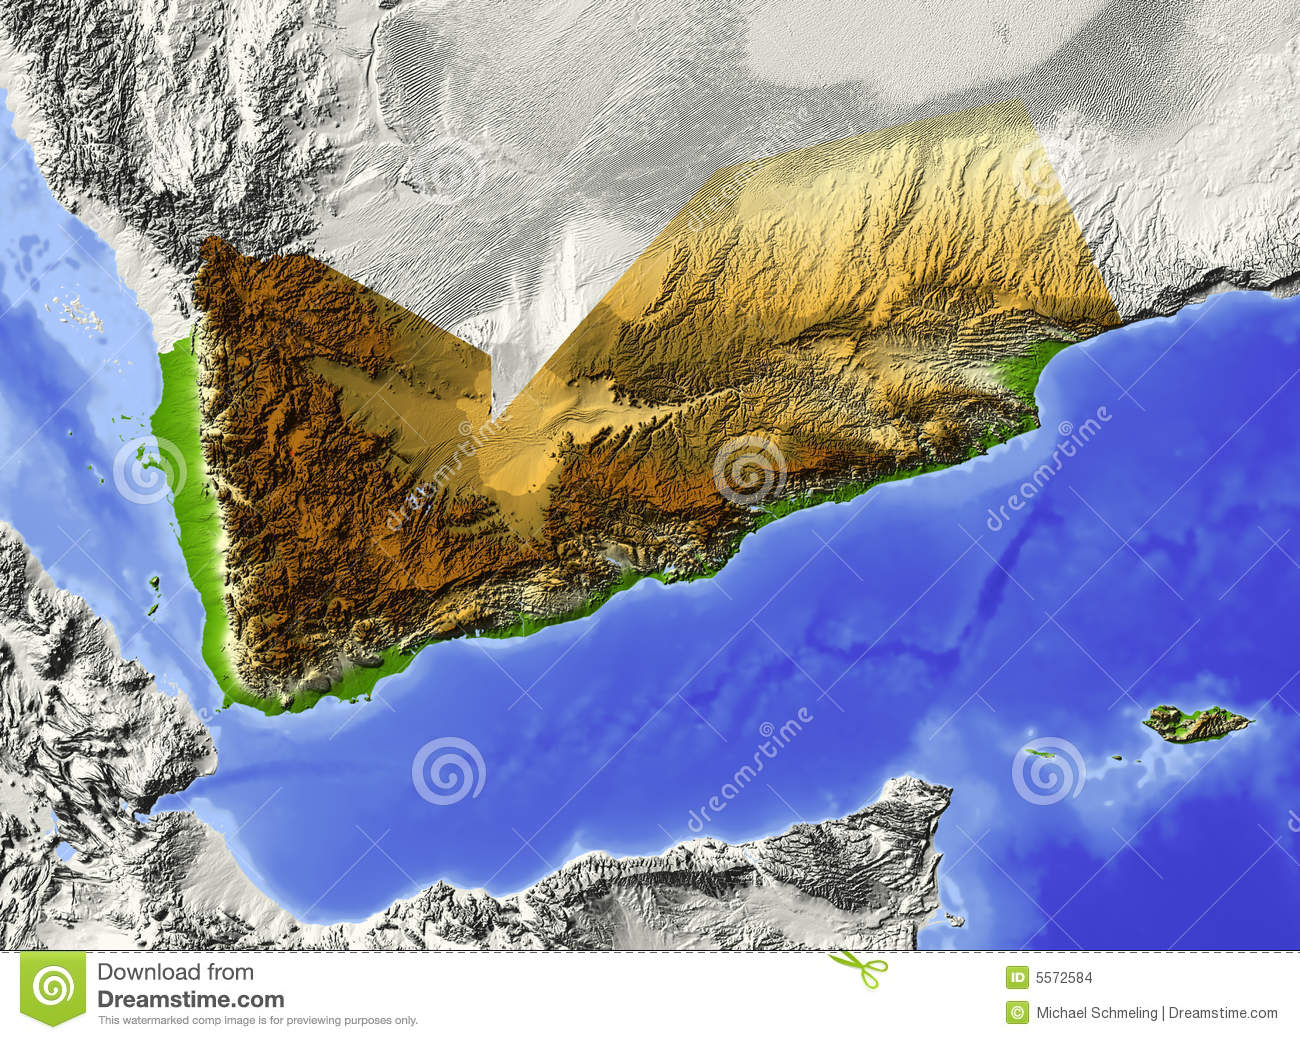 map of louisiana and surrounding states with Stock Images Yemen Relief Map Image5572584 on Maryland additionally Outline Map furthermore Denver Tourist Attractions Map likewise 9 Handpicked Things To Do In Split Croatia as well New York Location On The Us Map.